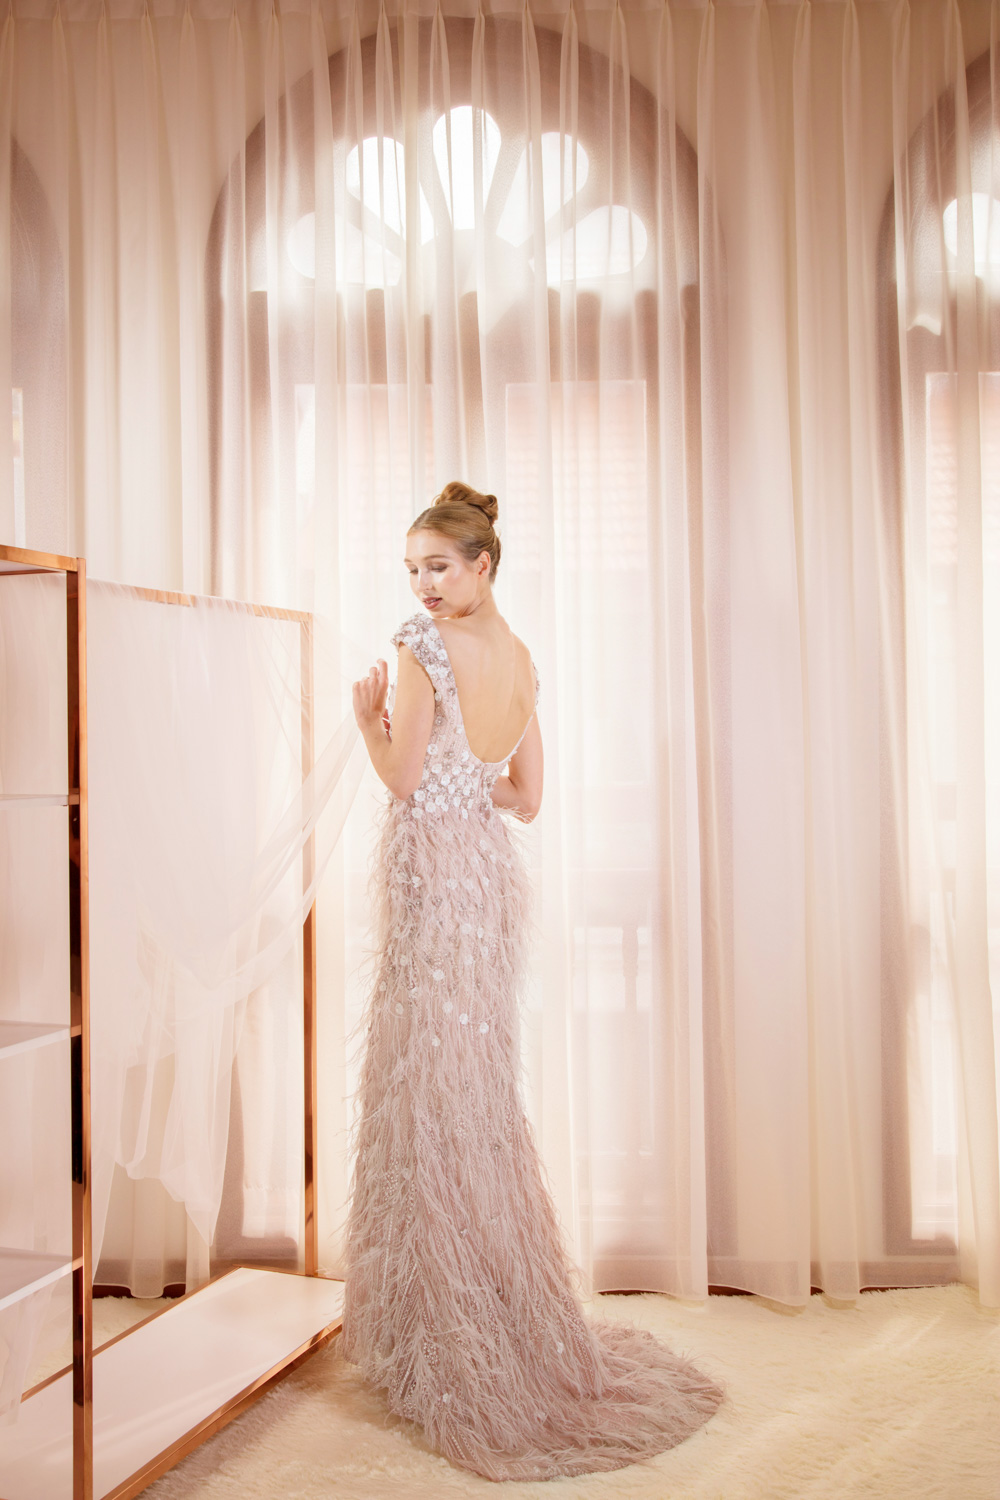 Evening gown with low back and feather detail by CCM Wedding